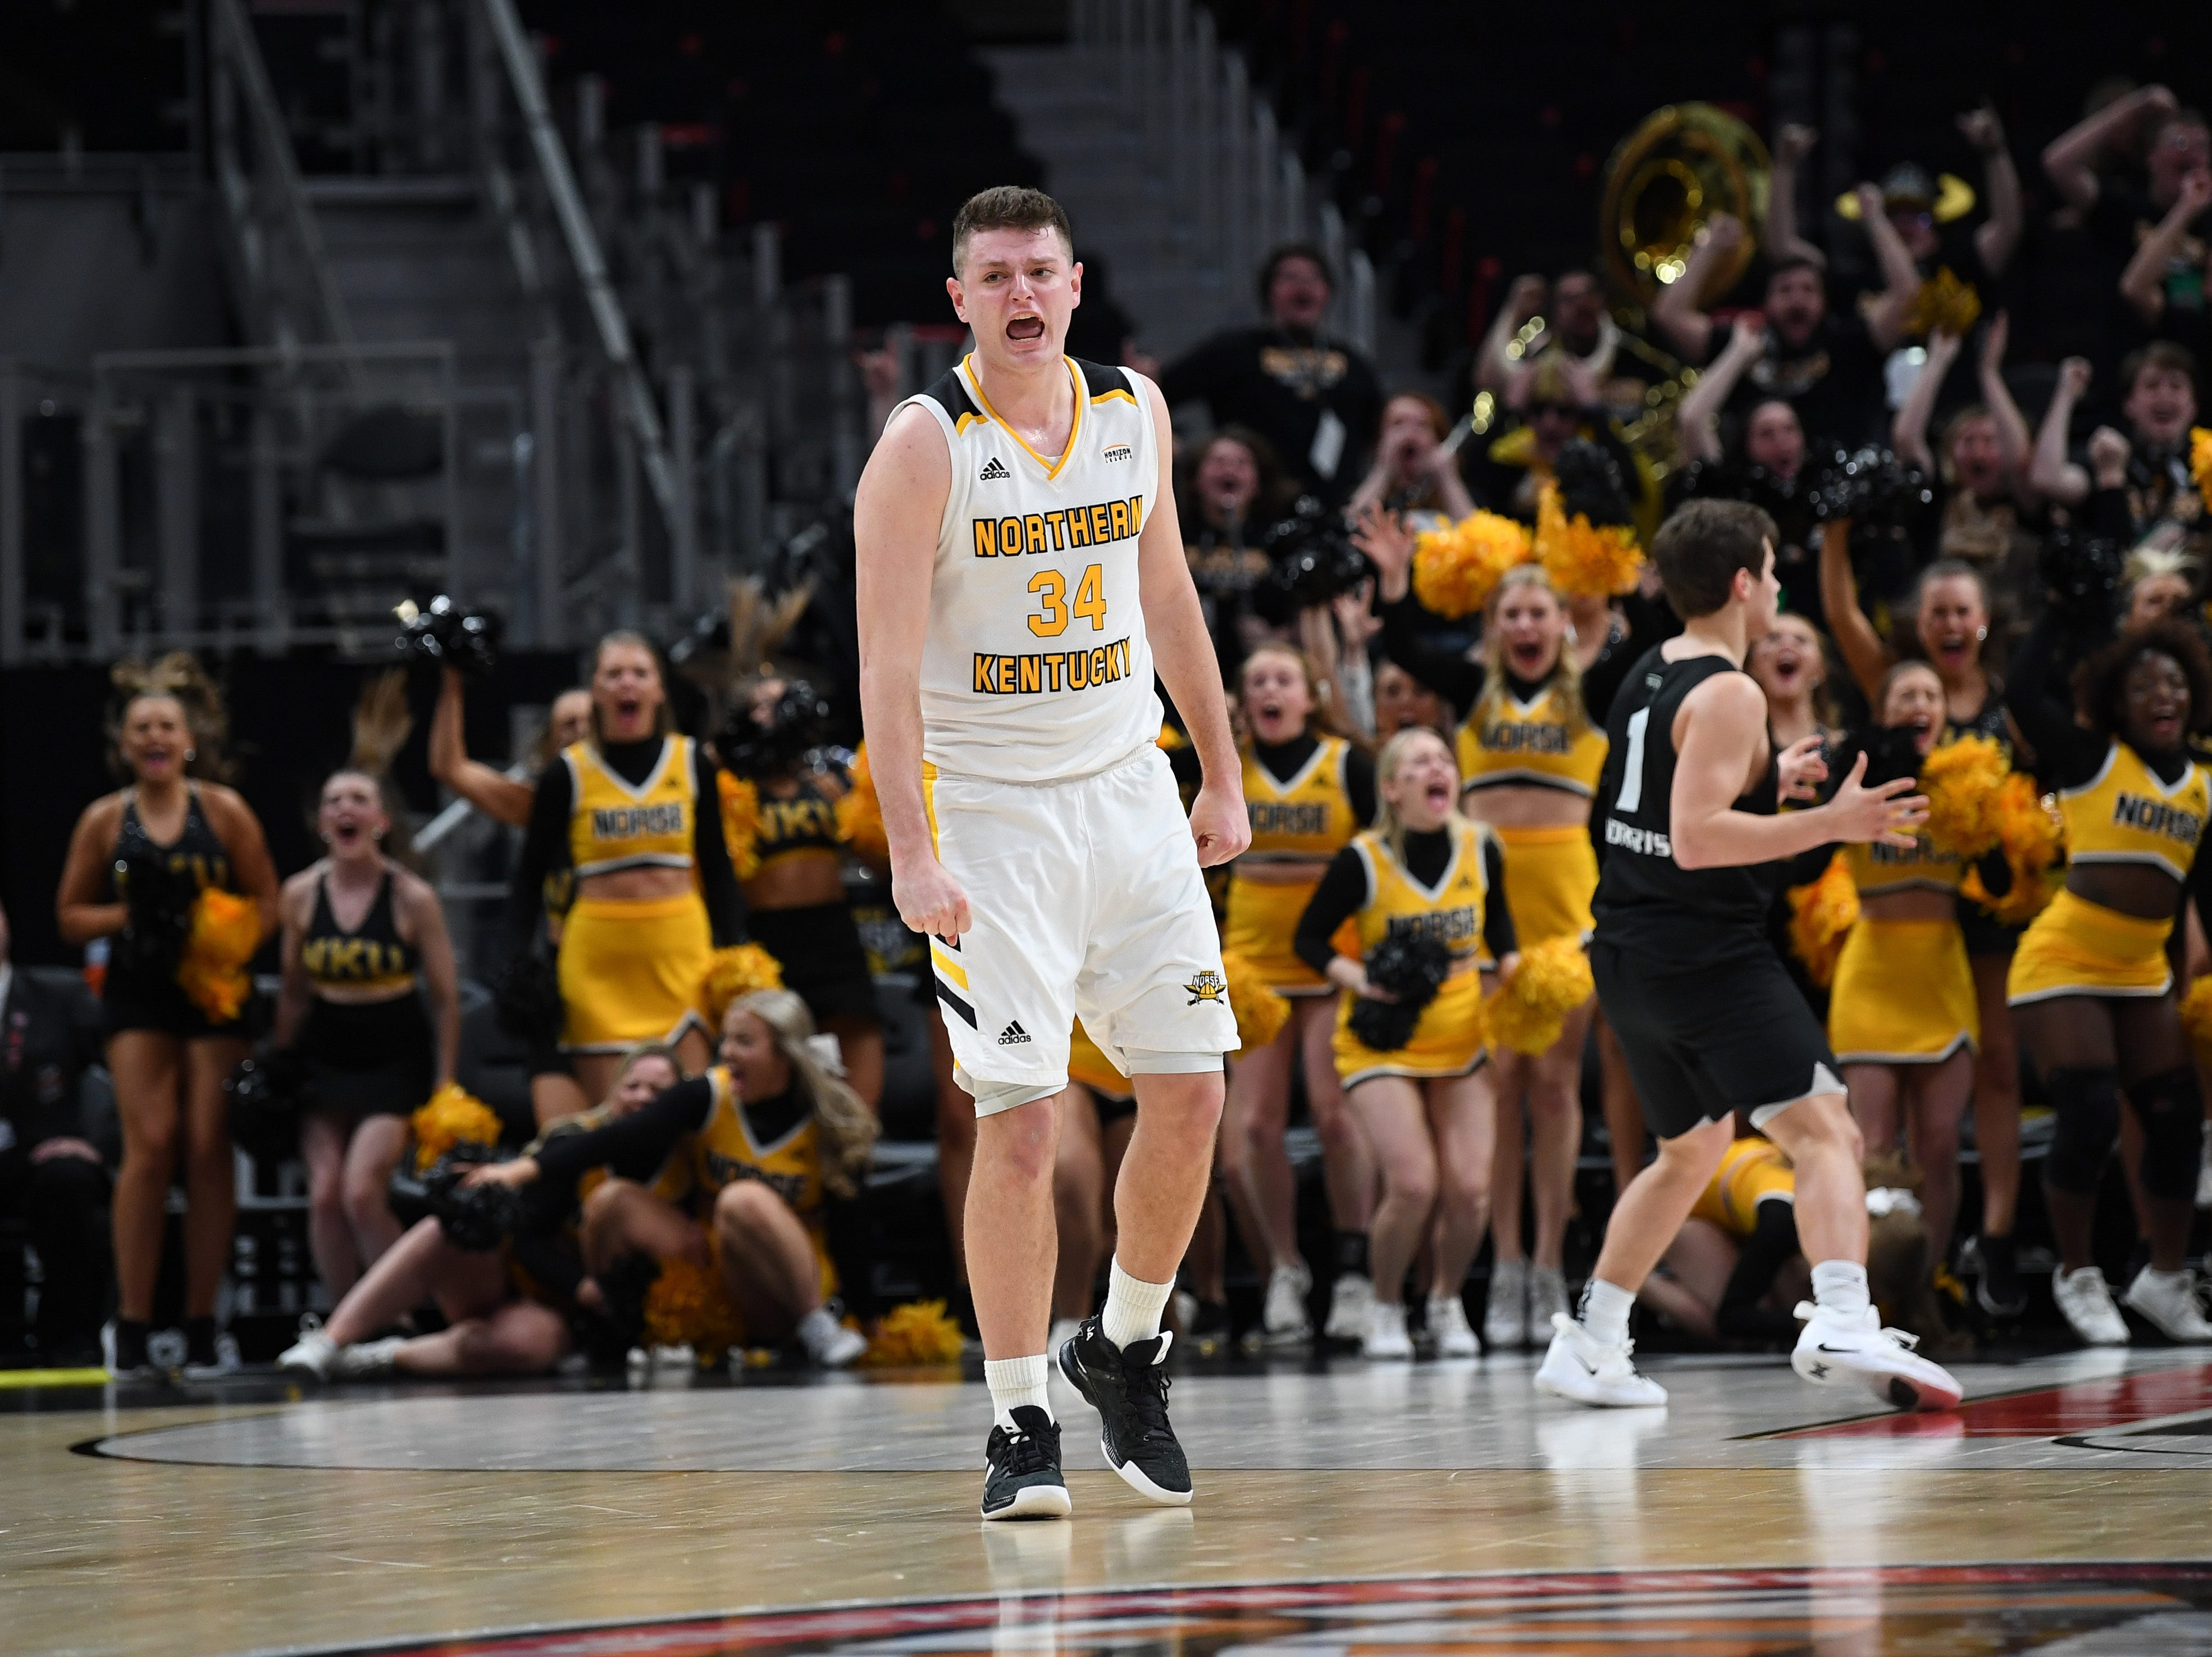 Northern Kentucky Norse forward Drew McDonald reacts after making the game winning shot aganst the Oakland Golden Grizzlies.